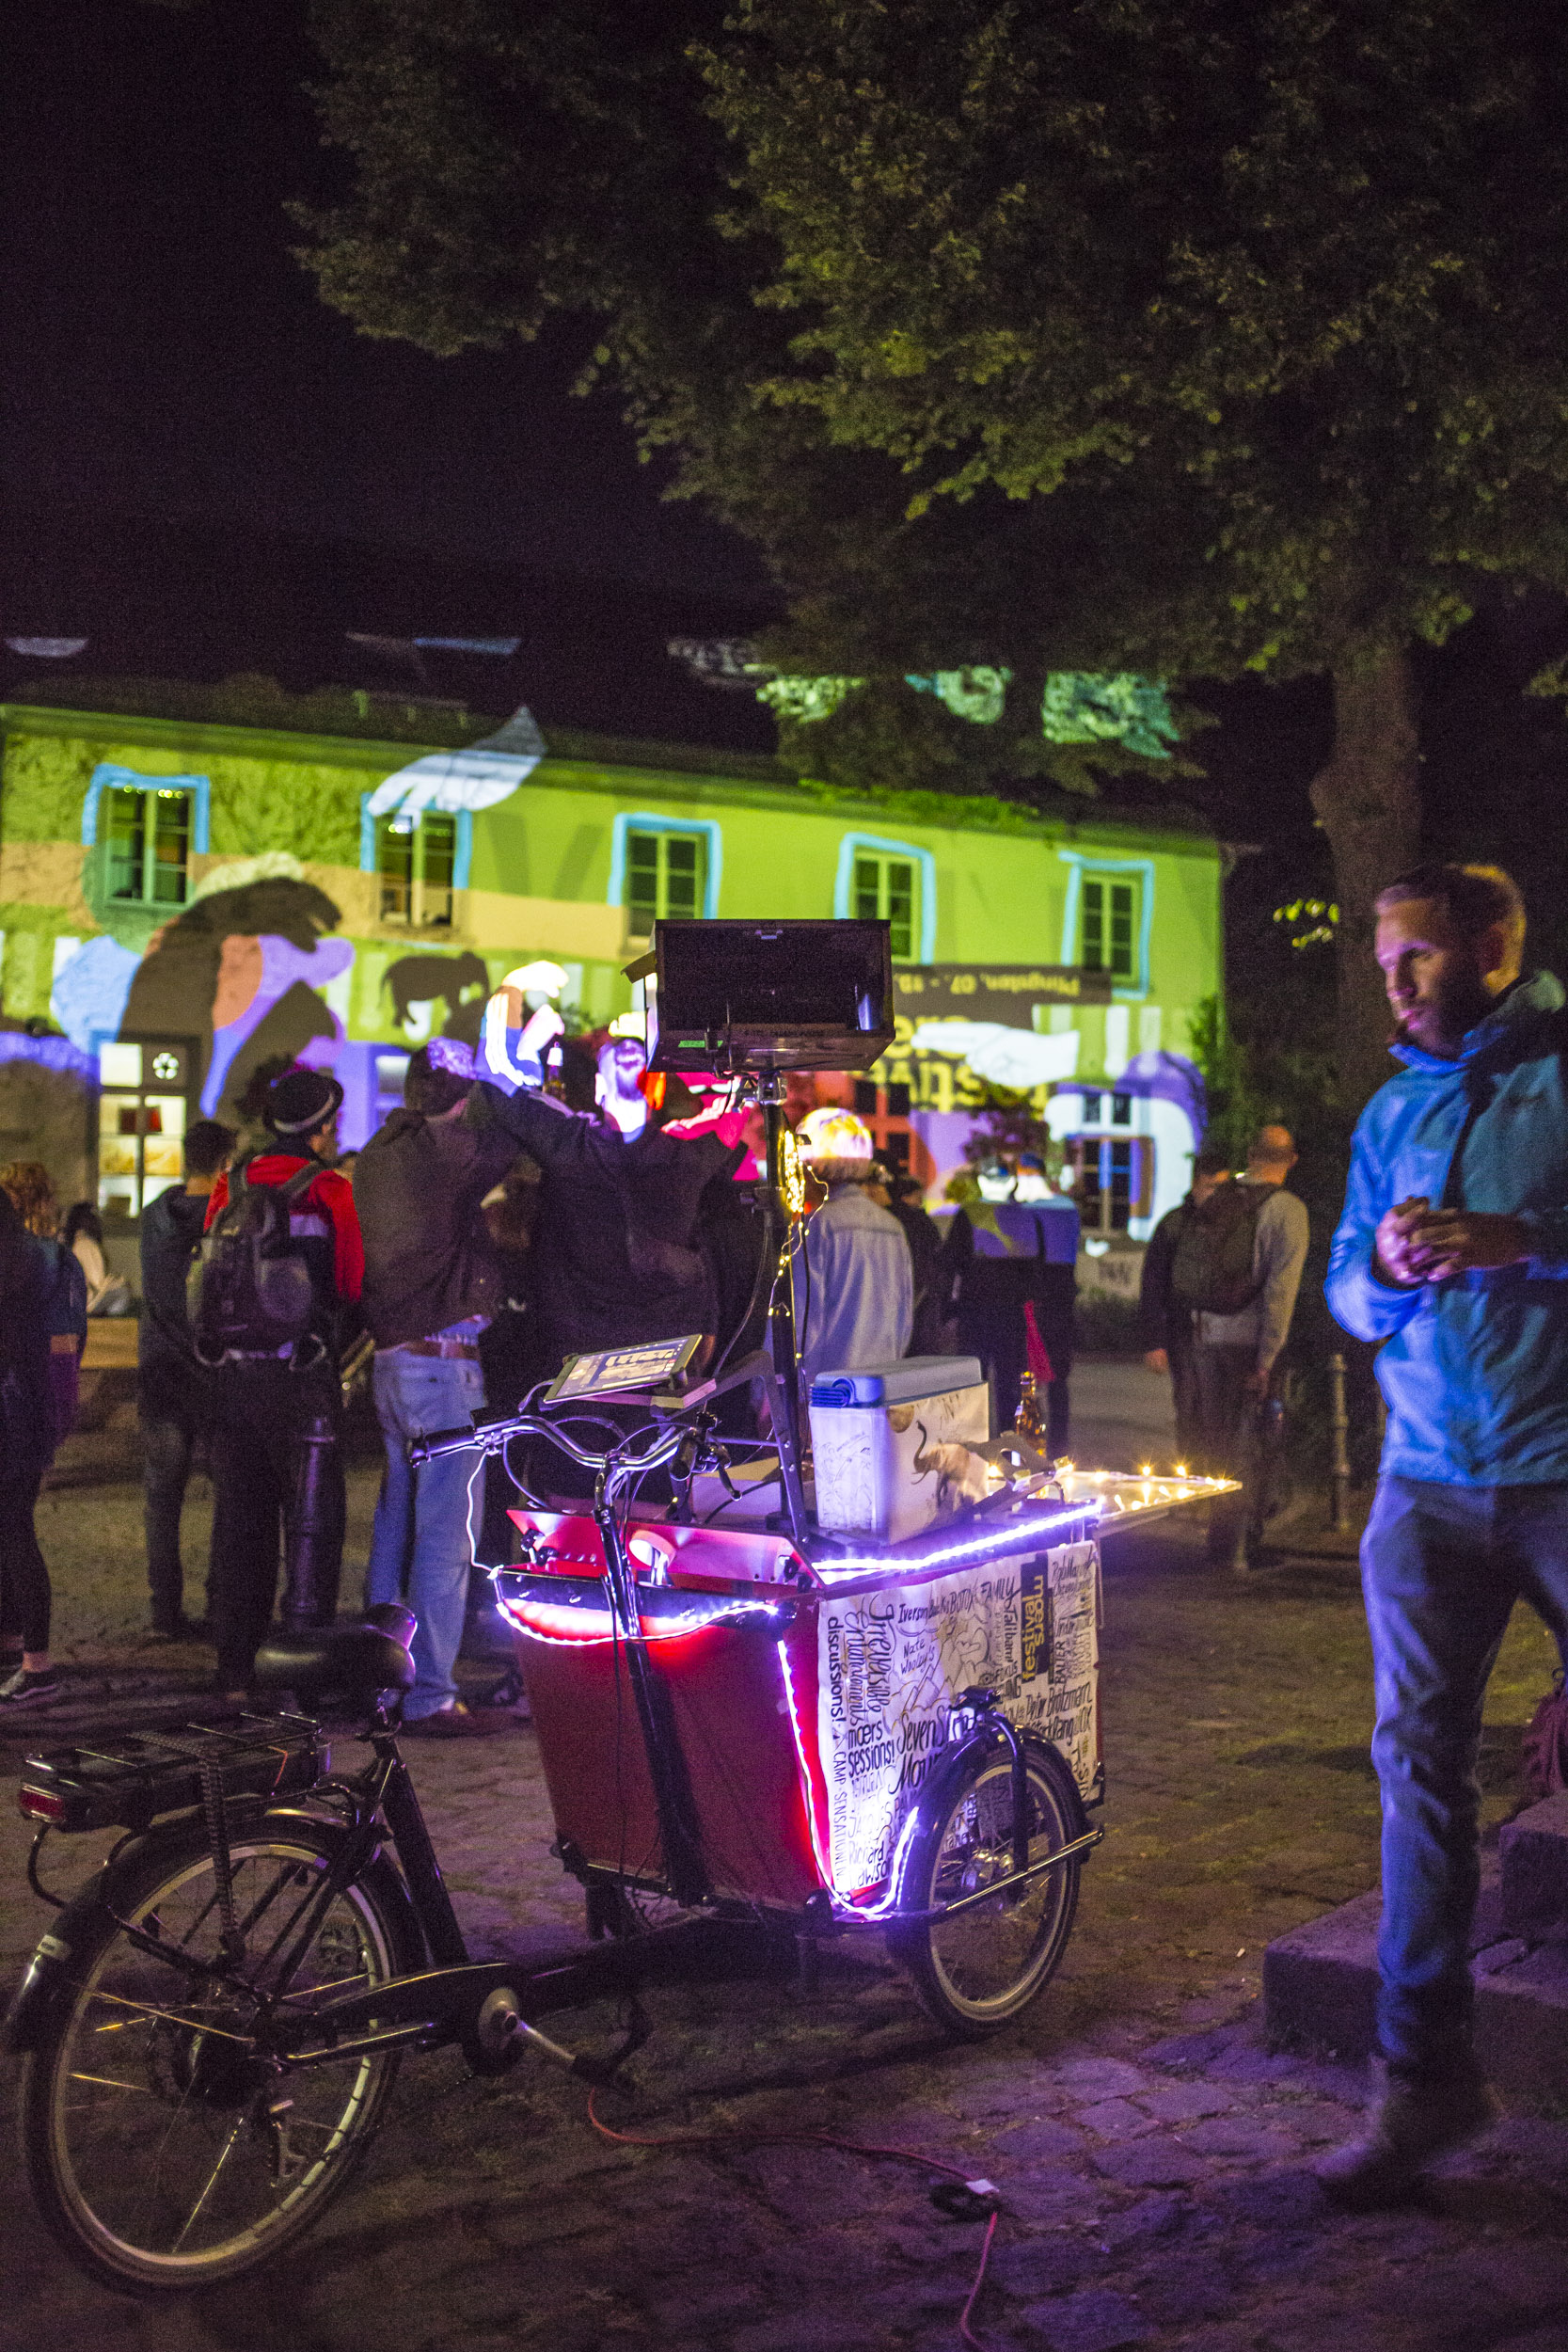 Moersfestival – Multimedia Bike